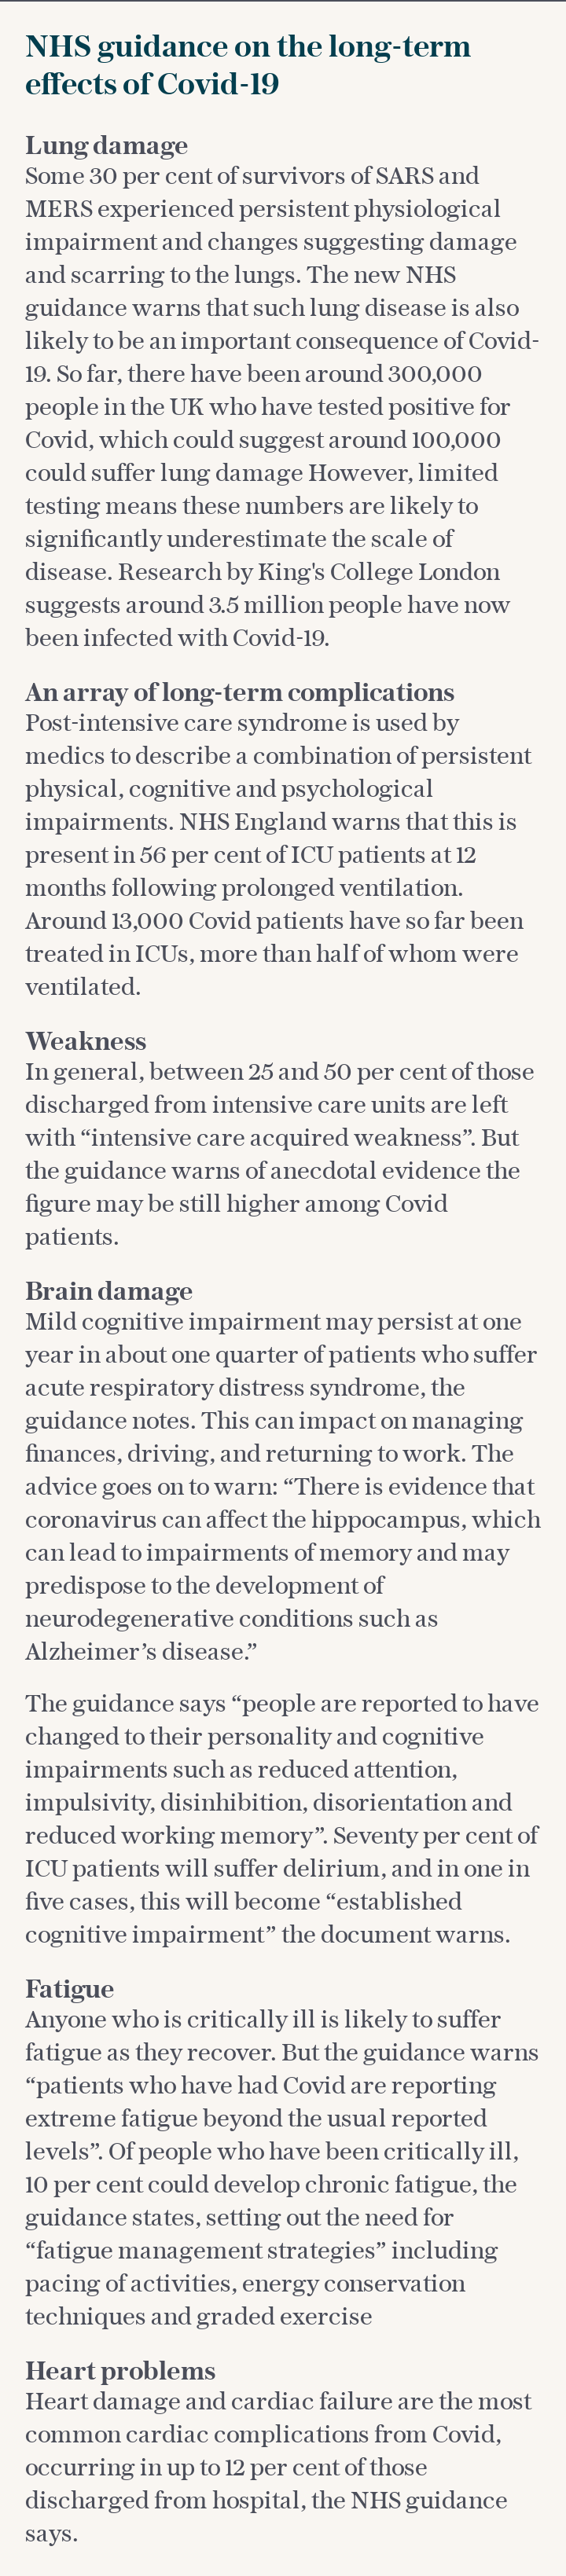 The NHS guidance on the long-term effects of Covid-19